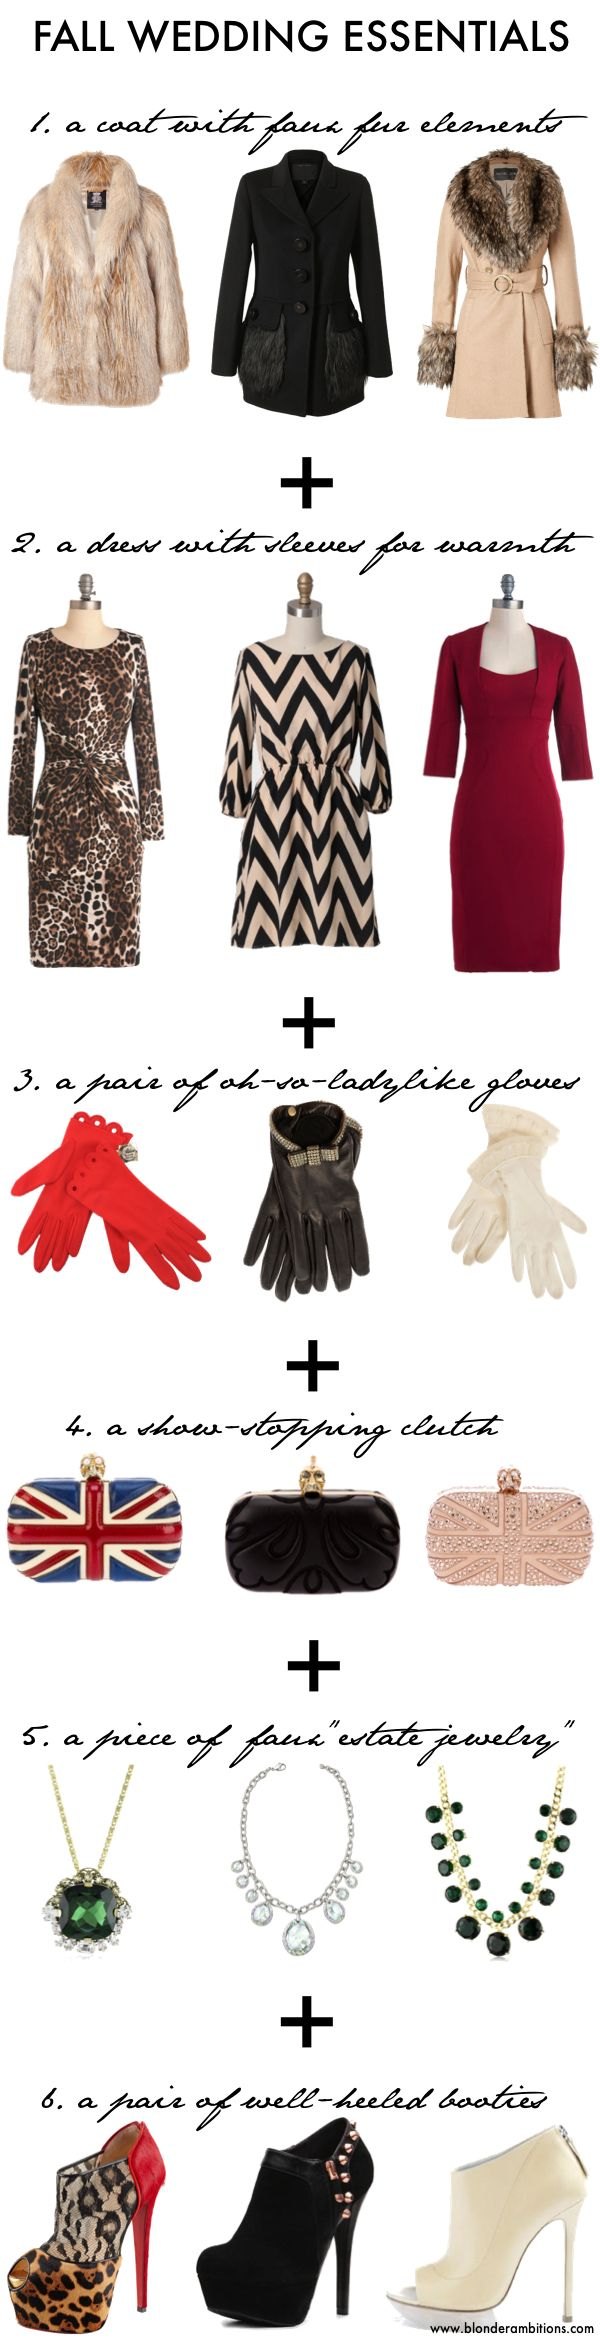 What to Wear to a Fall Wedding. Fashion. Style. Classic. Elegant. How To. #blonderambitions